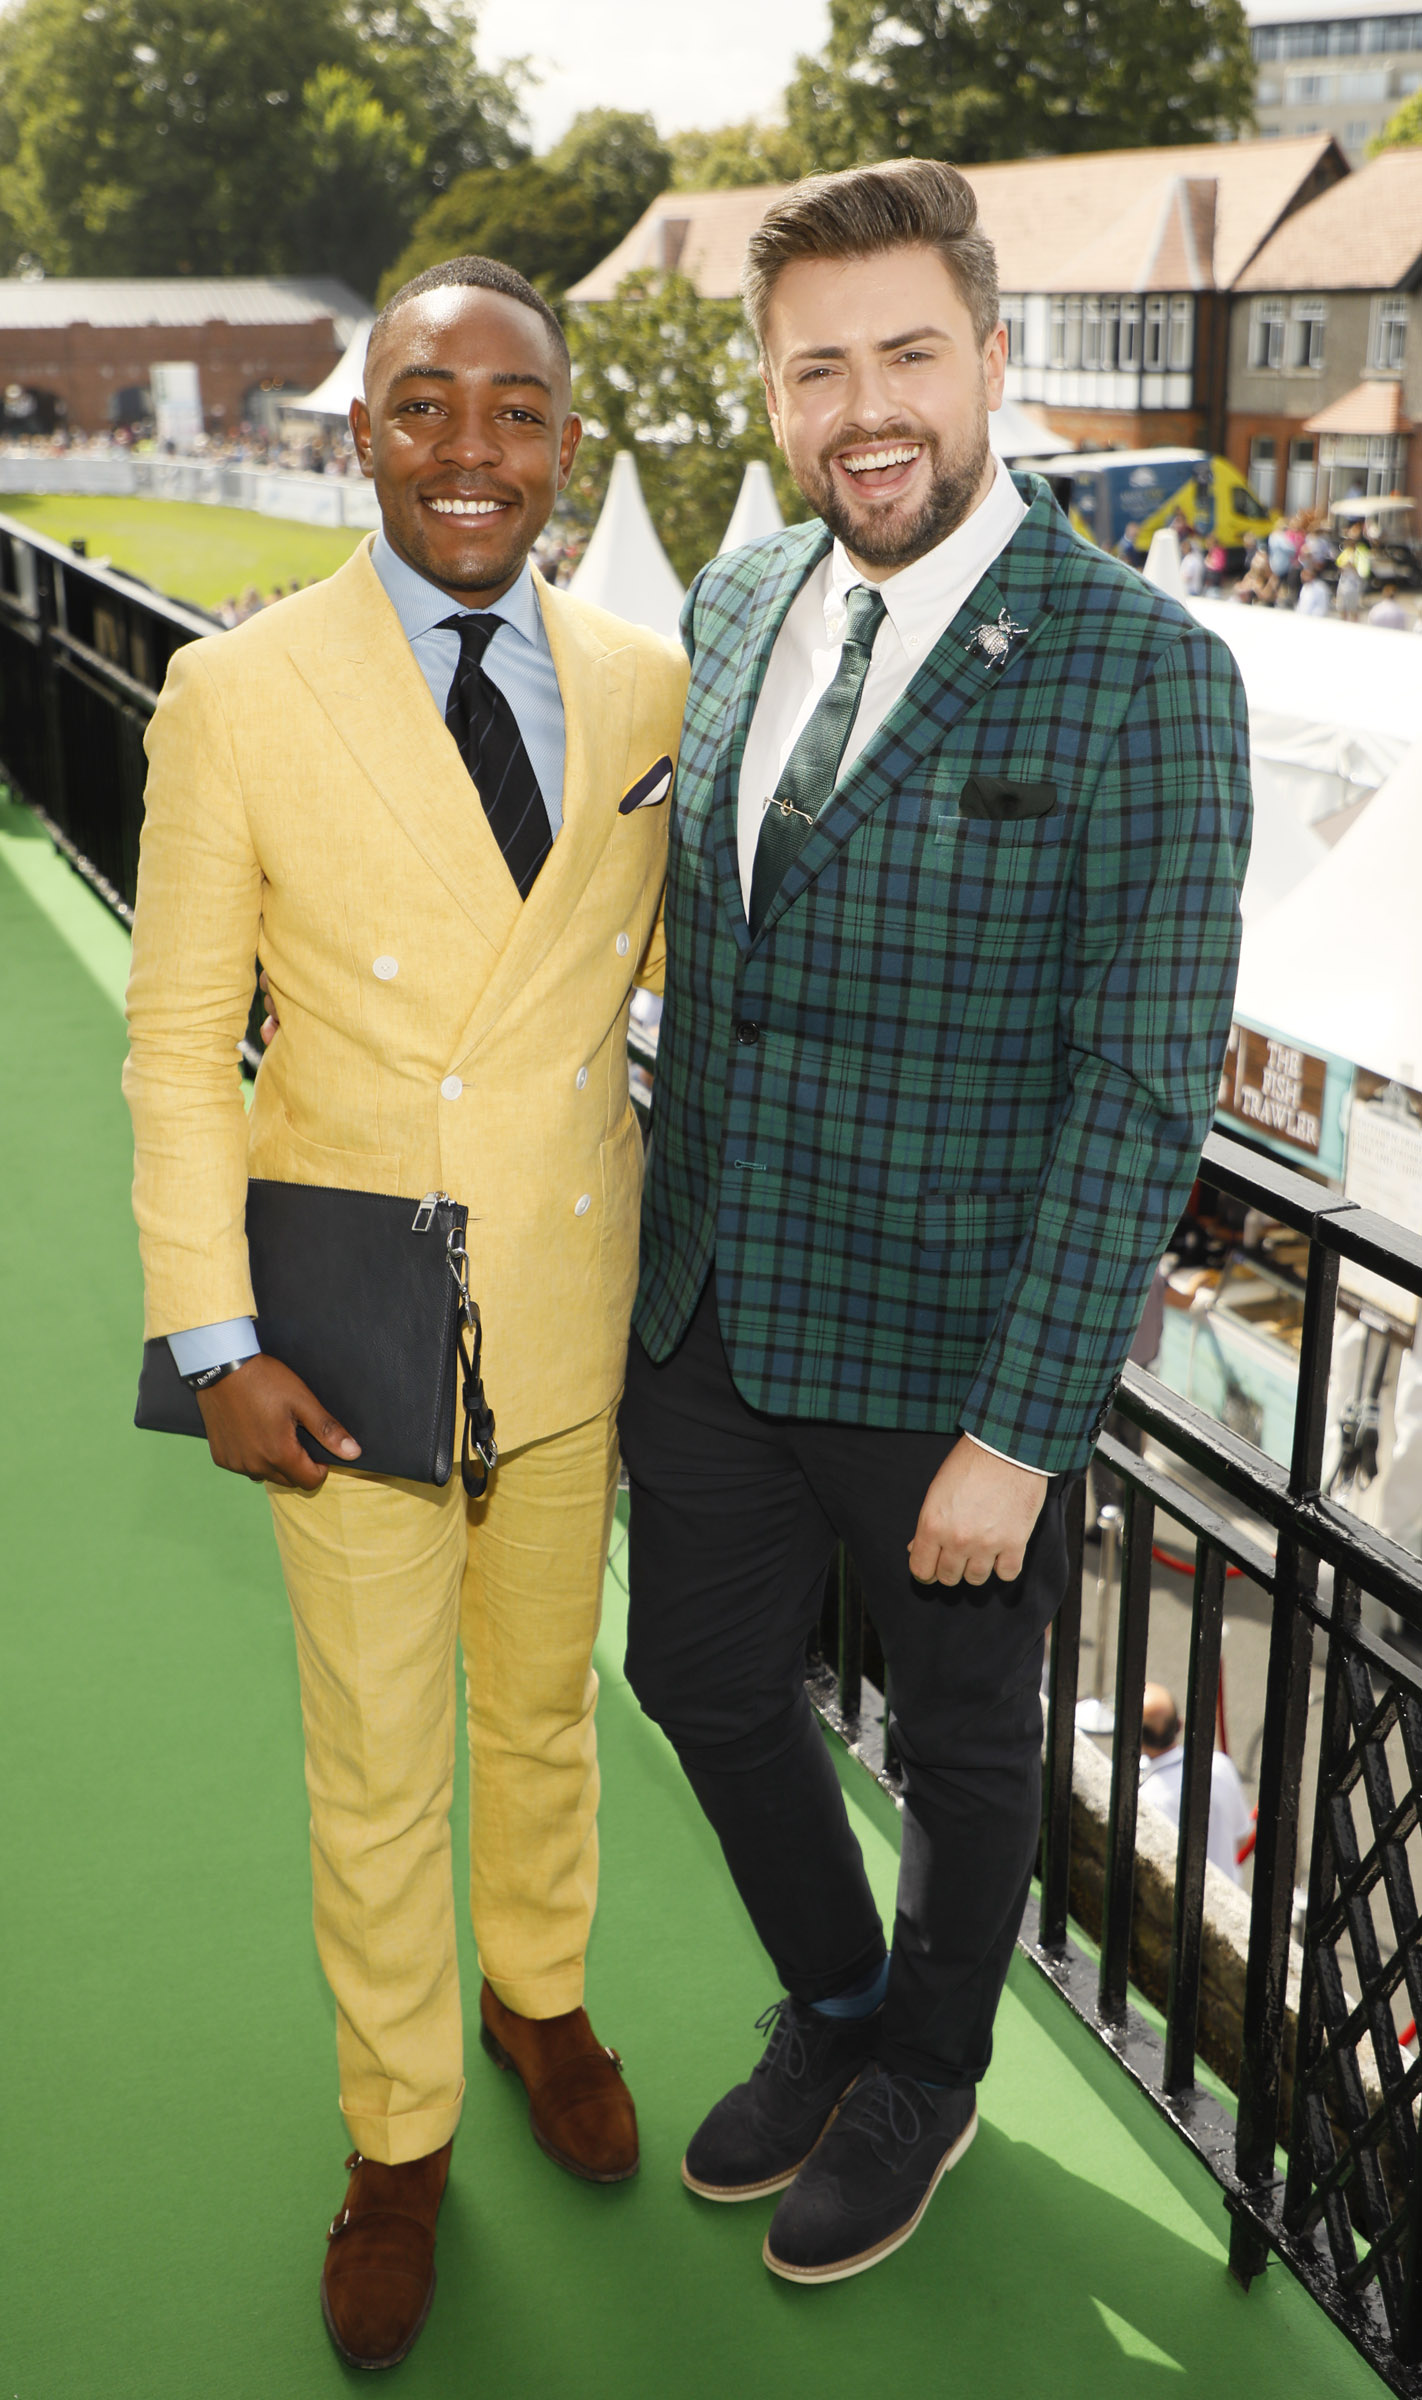 Lawson Mpame and James Patrice at the Dundrum Town Centre Ladies' Day at the Dublin Horse Show in the RDS. Photo: Kieran Harnett